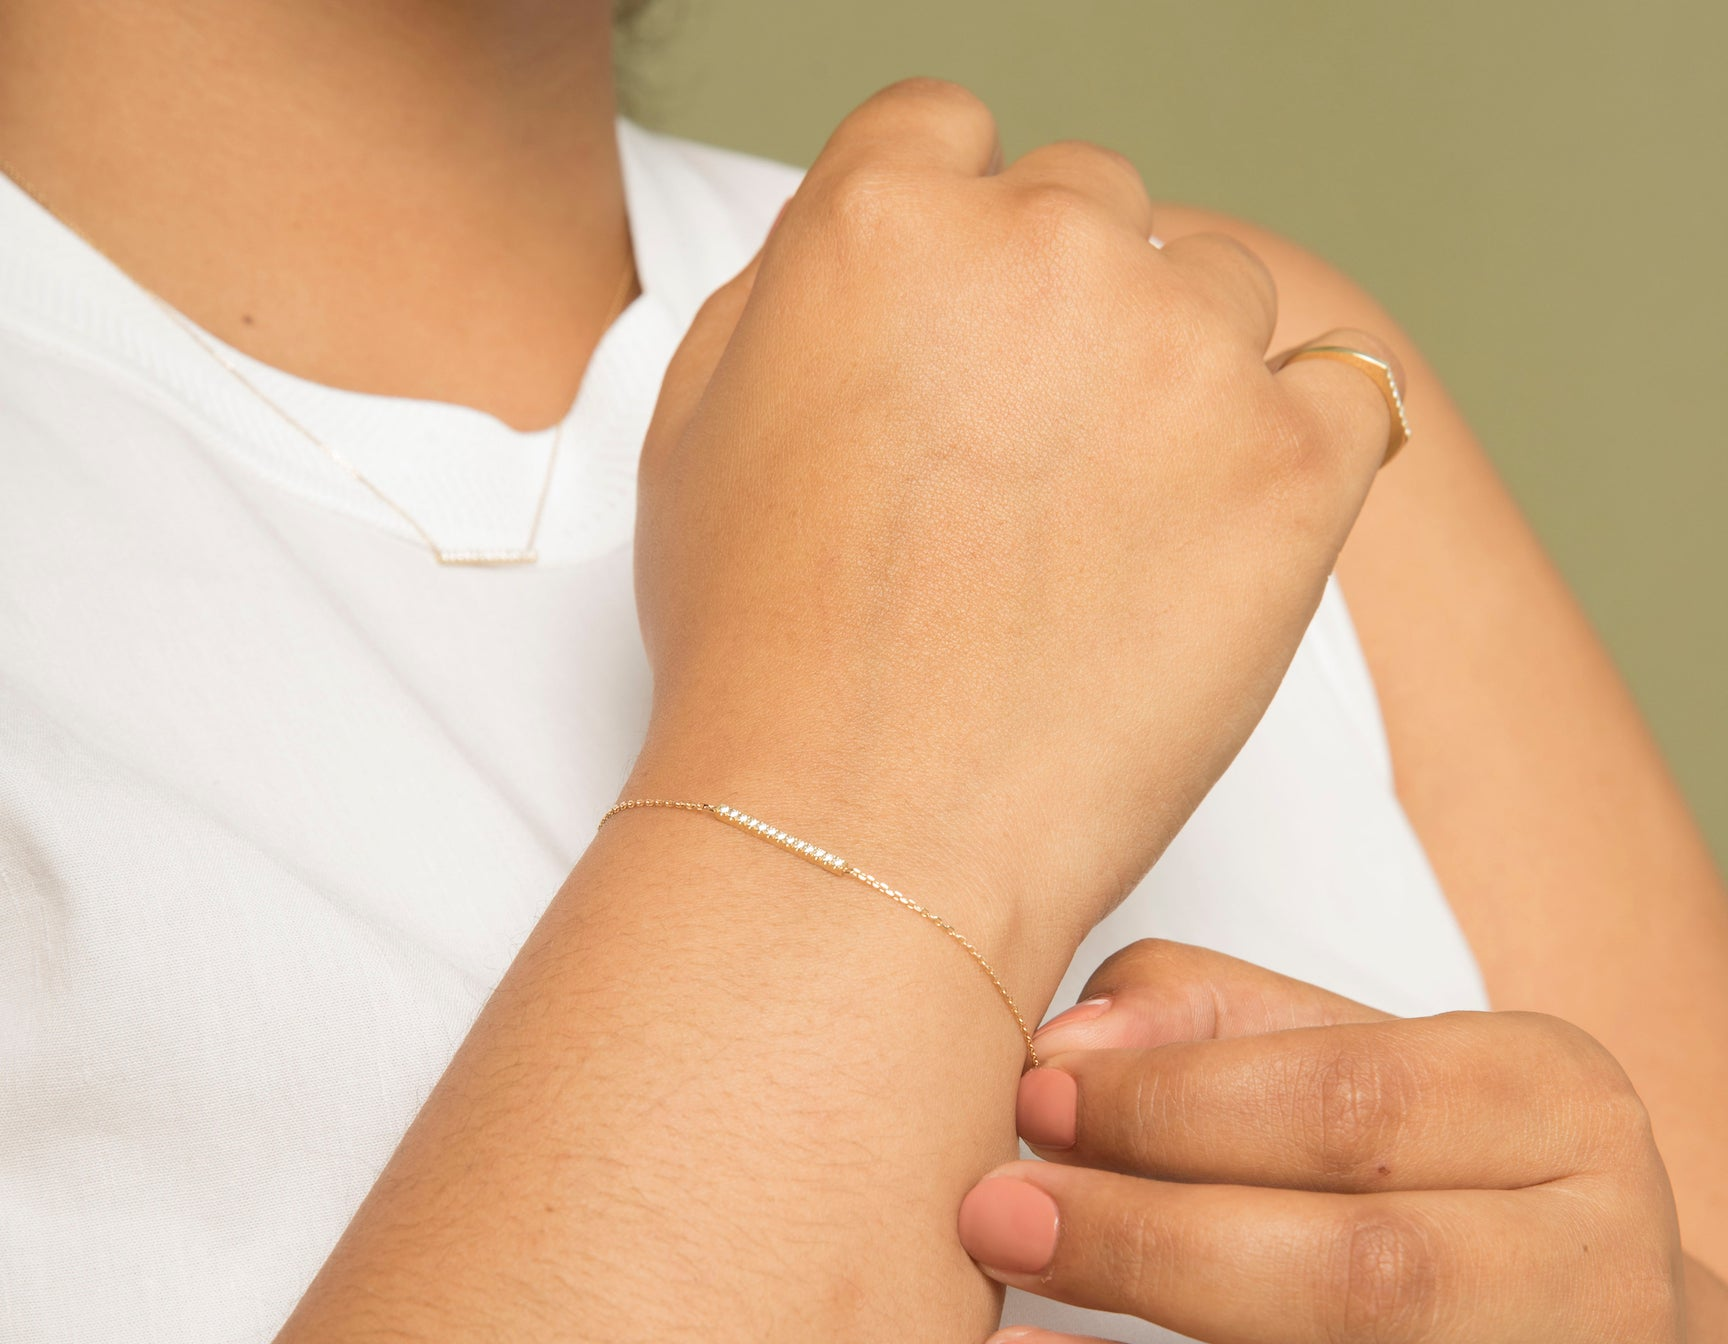 Model wearing sleek Vrai solid gold Line Bracelet with Pave, 14K Yellow Gold